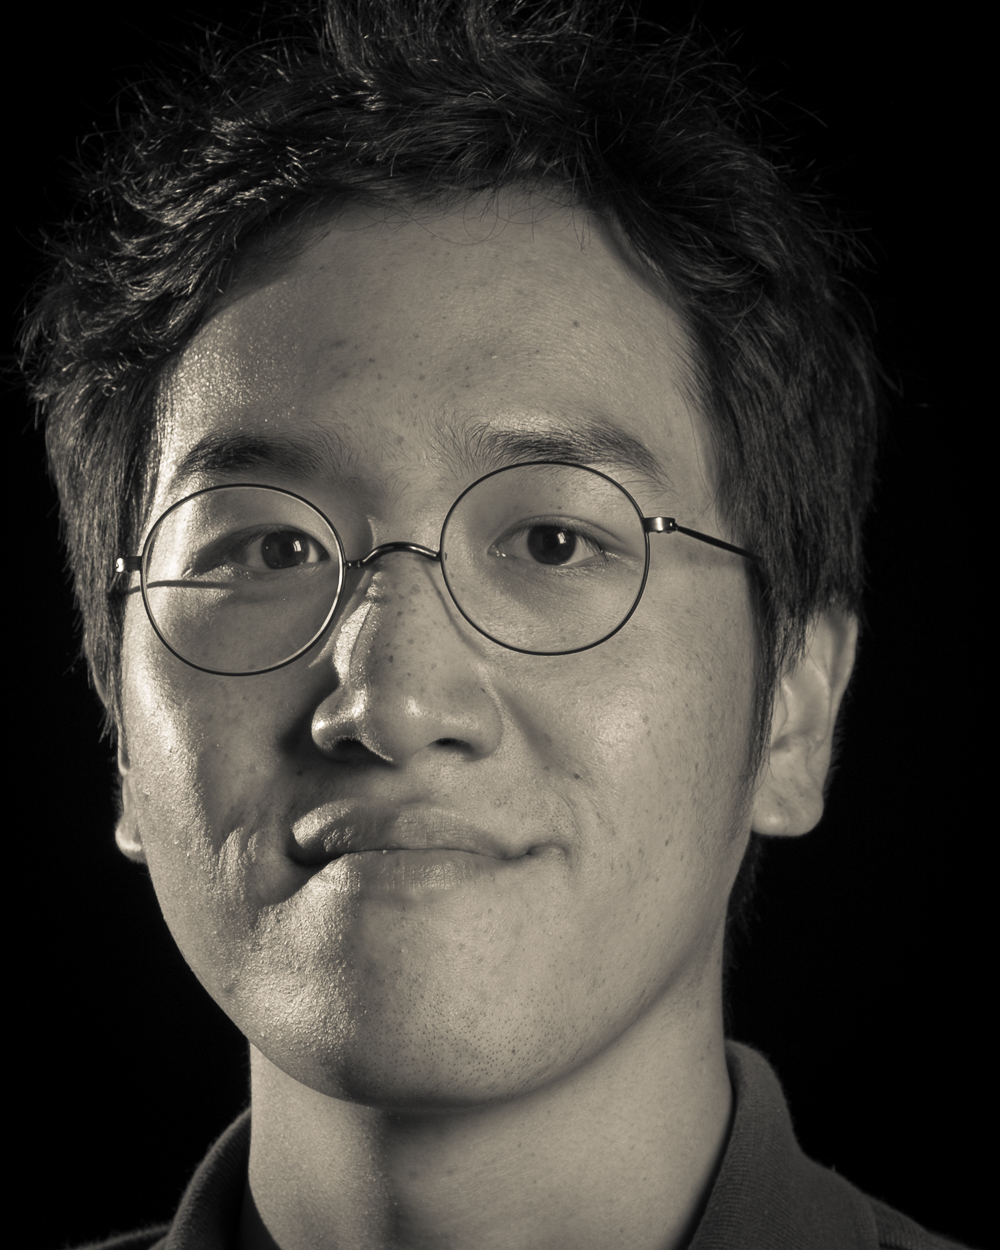 Byunghwan Lee